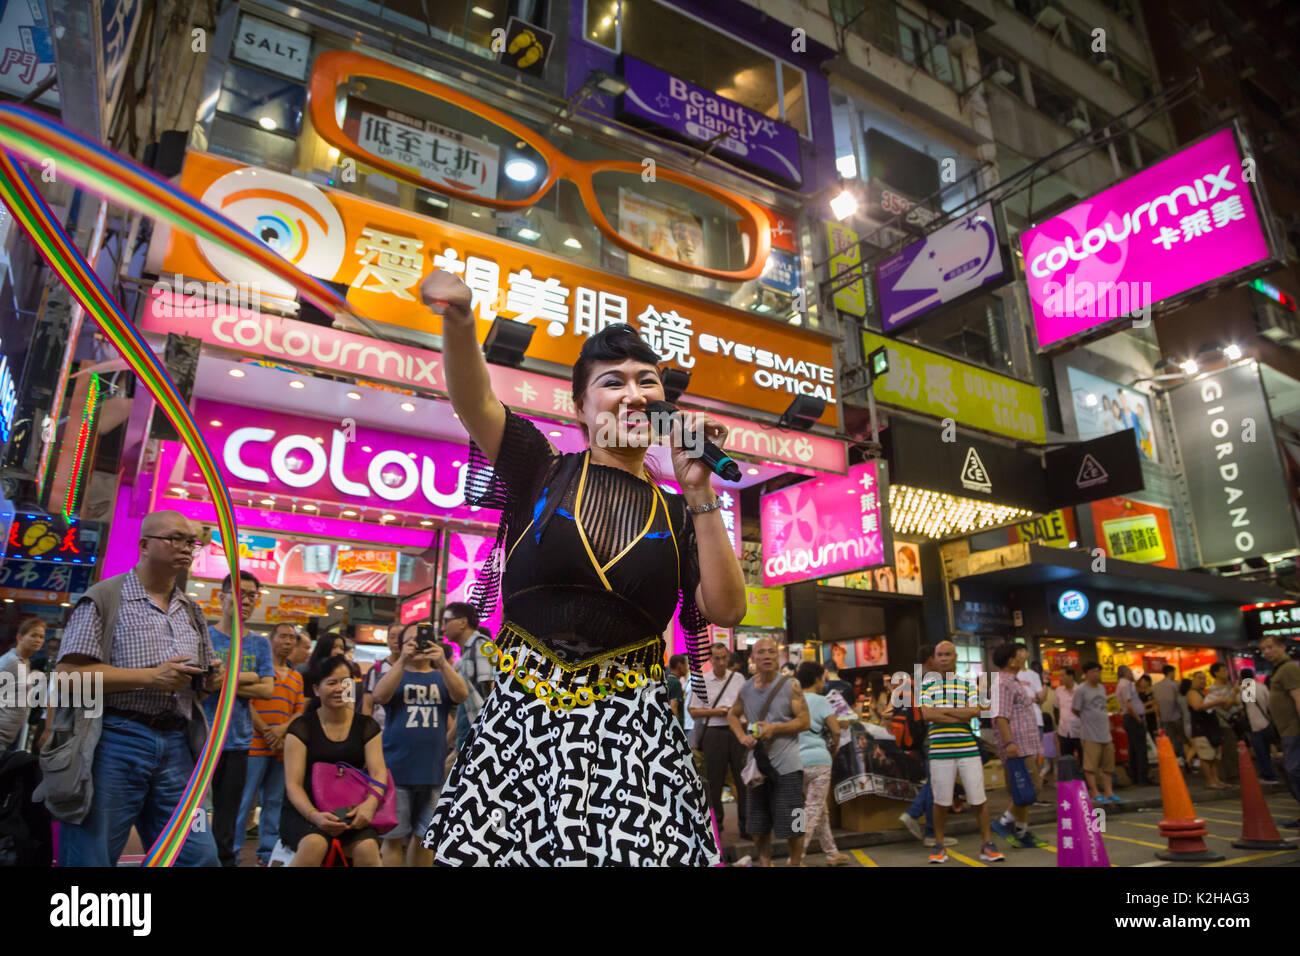 Crowd during live performance in the streets of Mong Kok on a Saturday night. Stock Photo